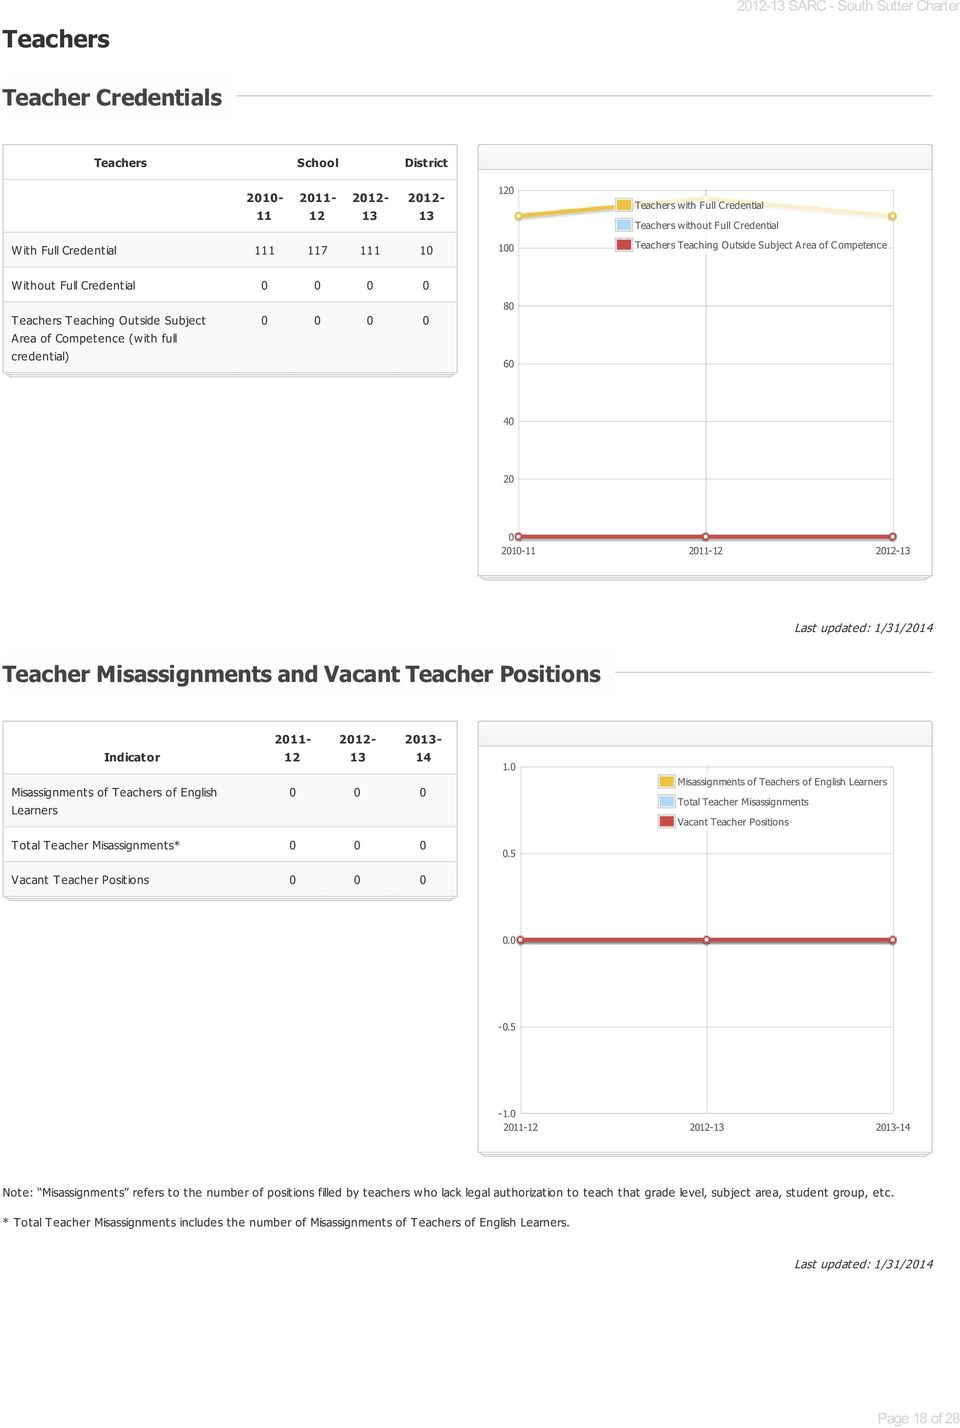 2010-11 2011-12 2012-13 Teacher Misassignments and Vacant Teacher Positions Teacher Misassignments and Vacant Teacher Positions Indicator Misassignments of Teachers of English Learners 2011-12